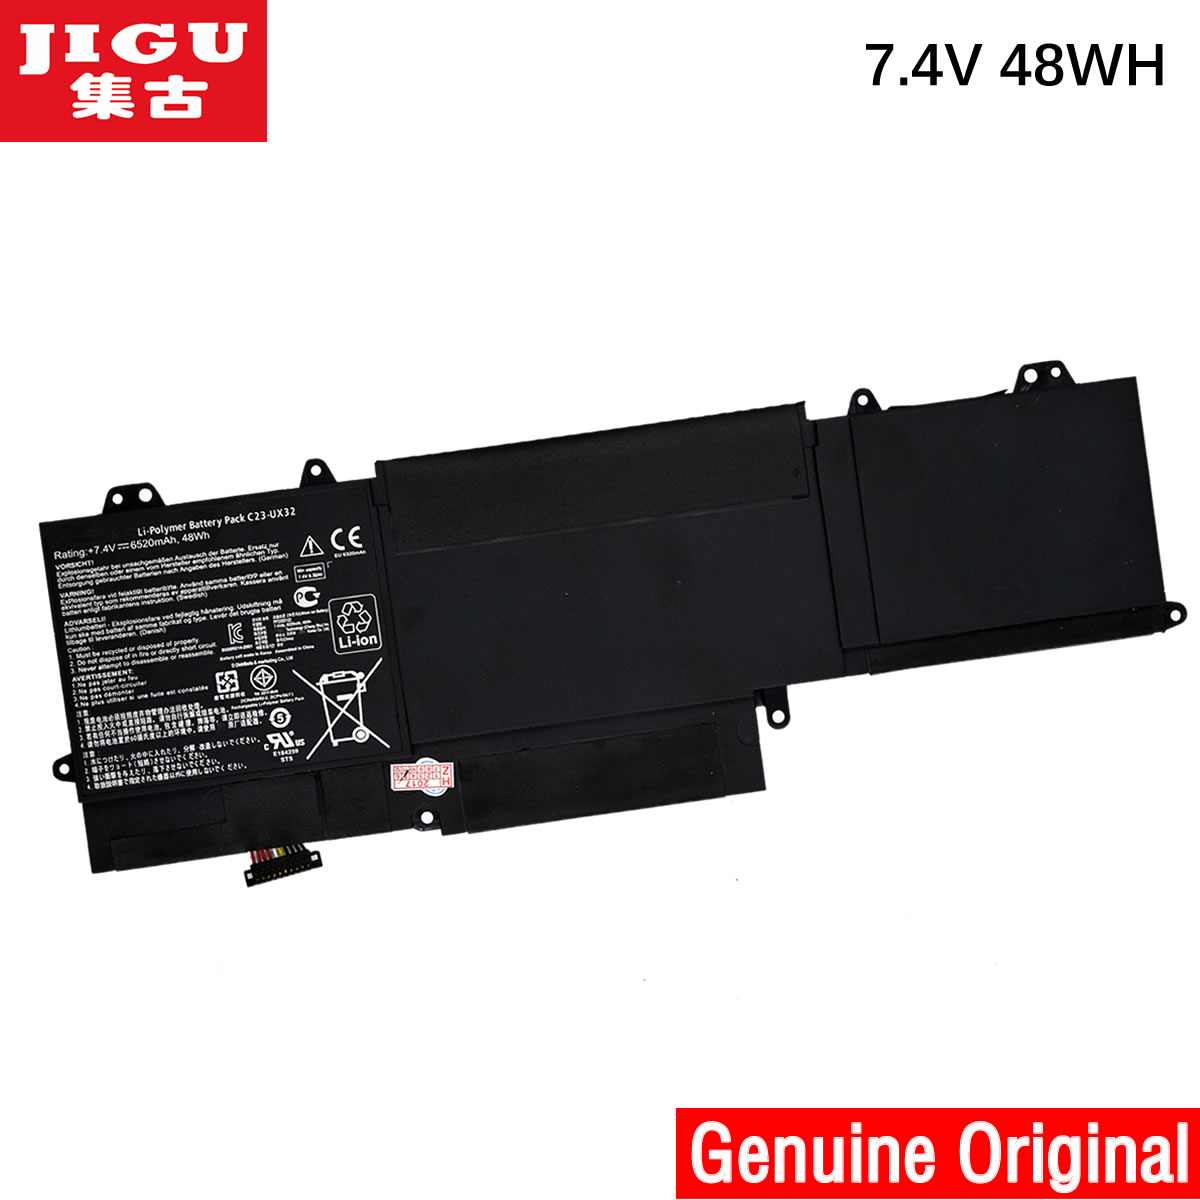 JIGU C23-UX32 Original Laptop Battery For Asus VivoBook U38N U38K U38DT For Zenbook UX32 UX32VD UX32LA 7.4V 48WH